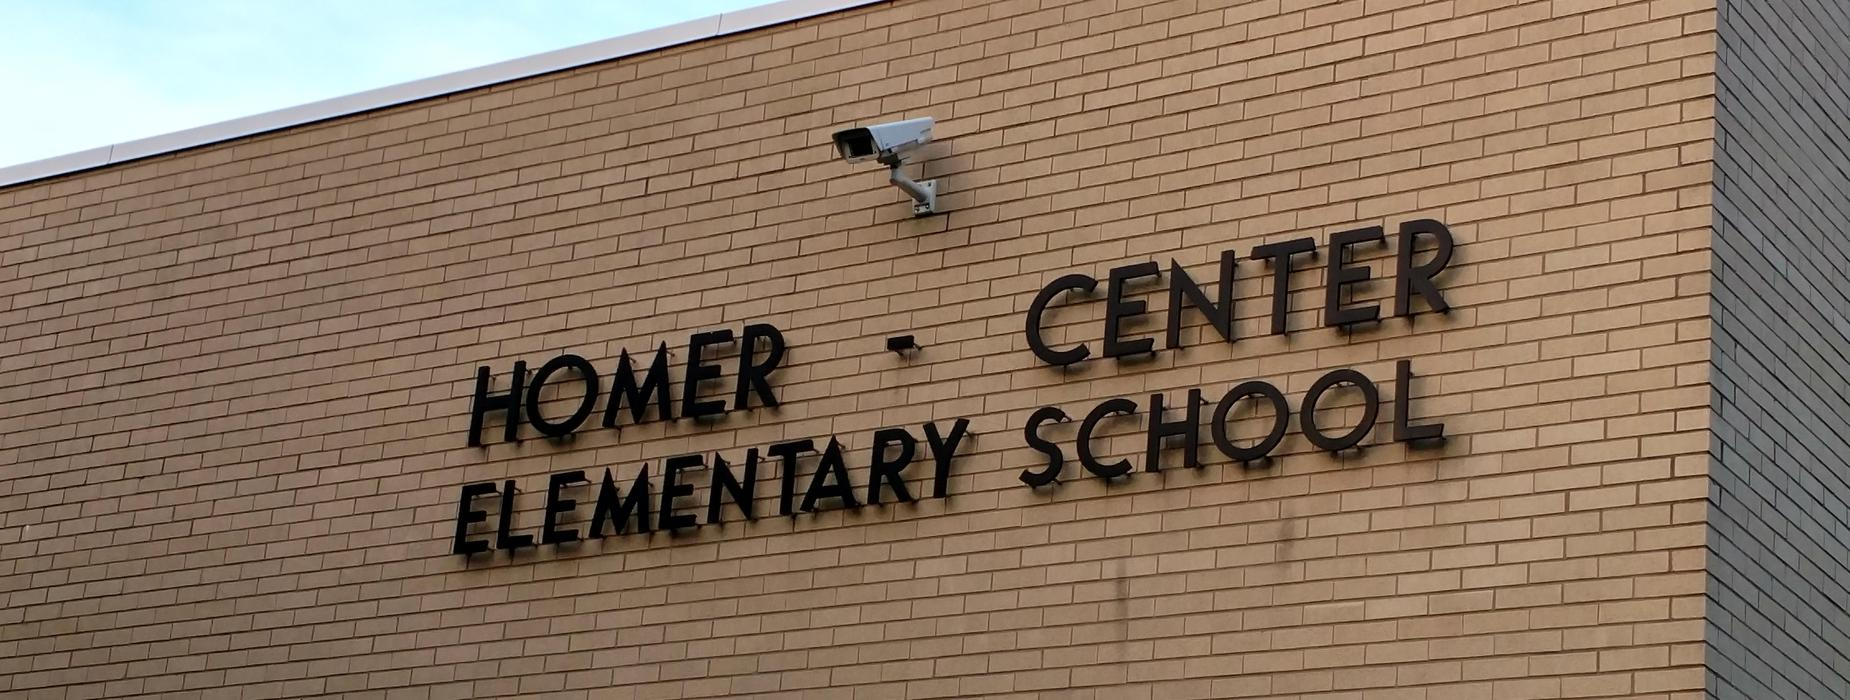 The lettering on the front of the Elementary Building